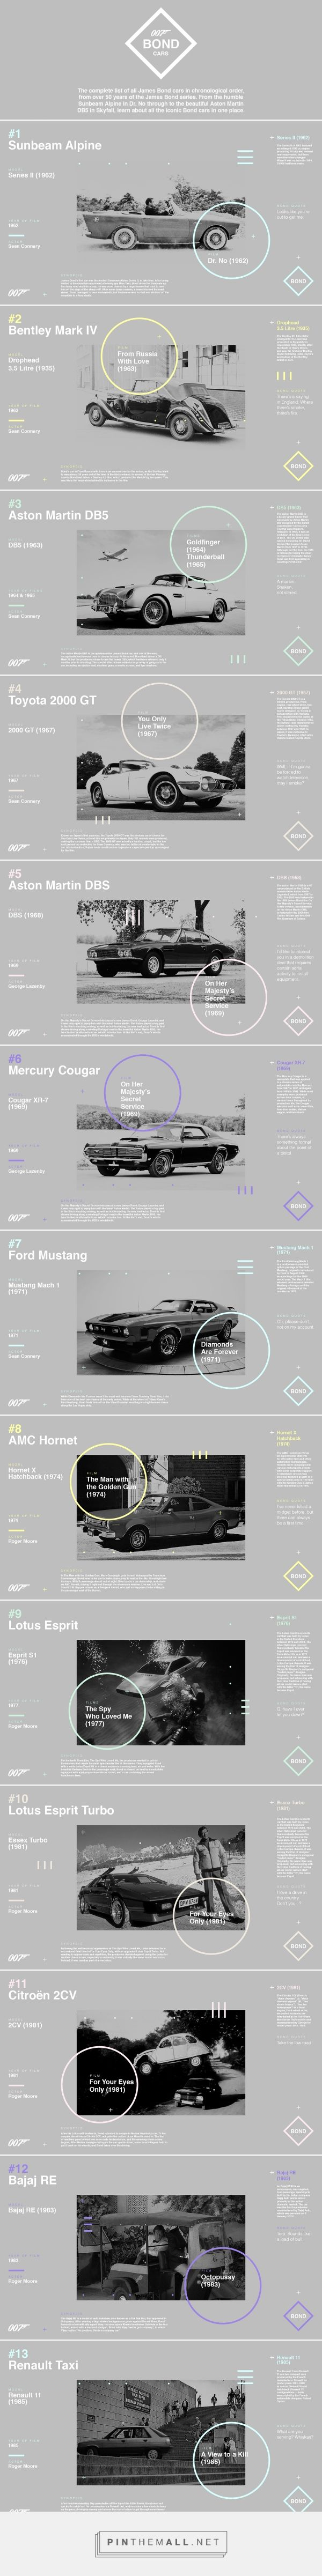 007 Bond Cars on Behance                                                       …